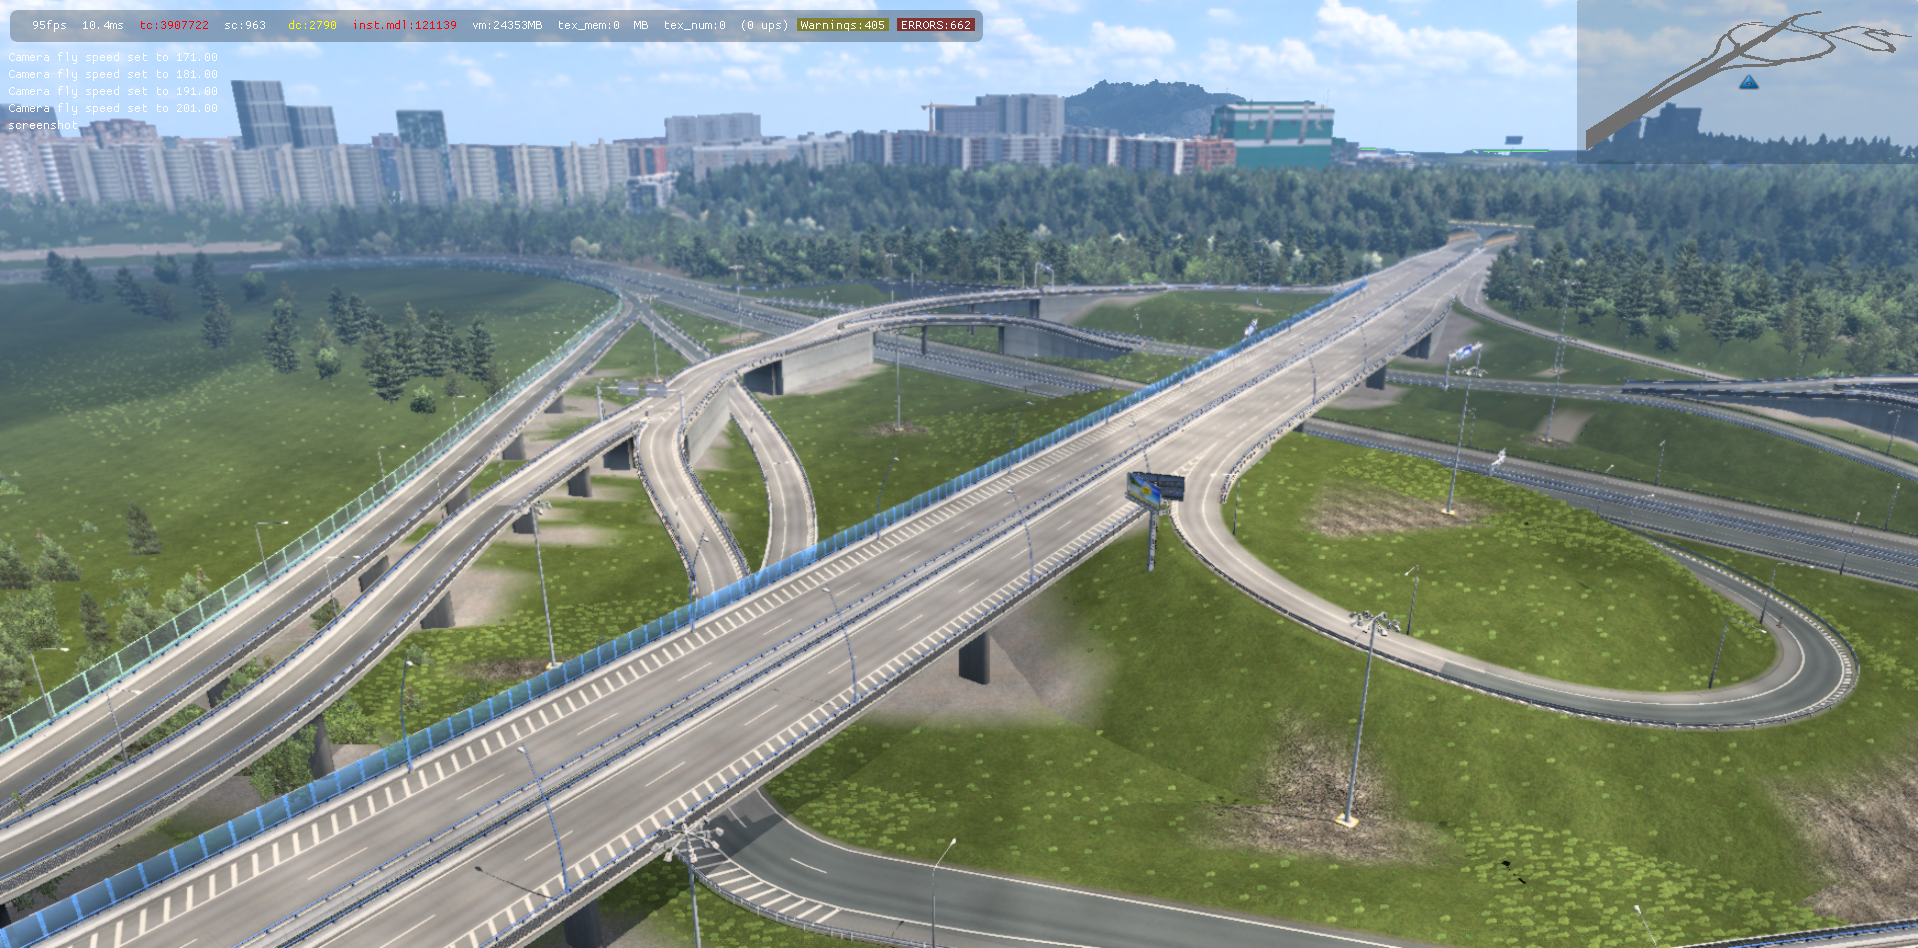 ets2_20210730_000908_00.png